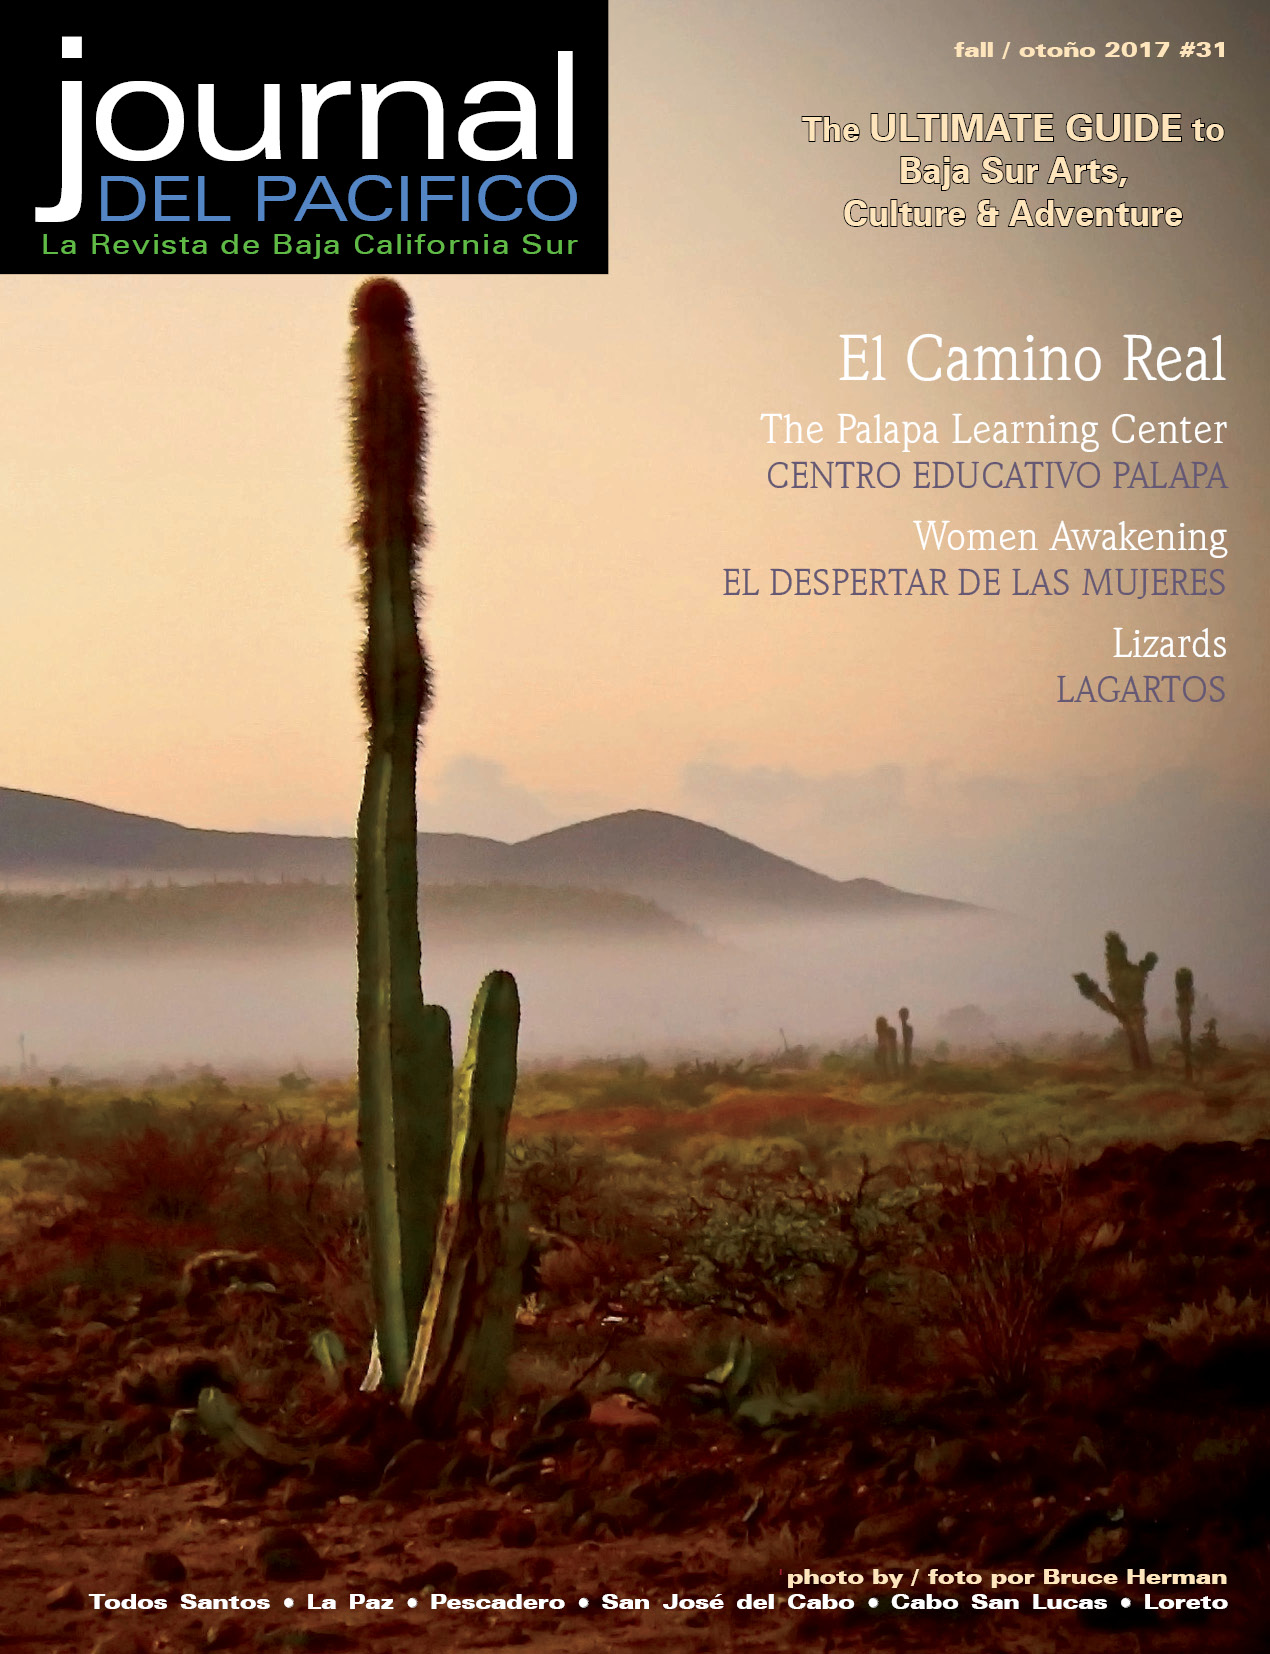 Fall 2017 Issue of Journal del Pacifico